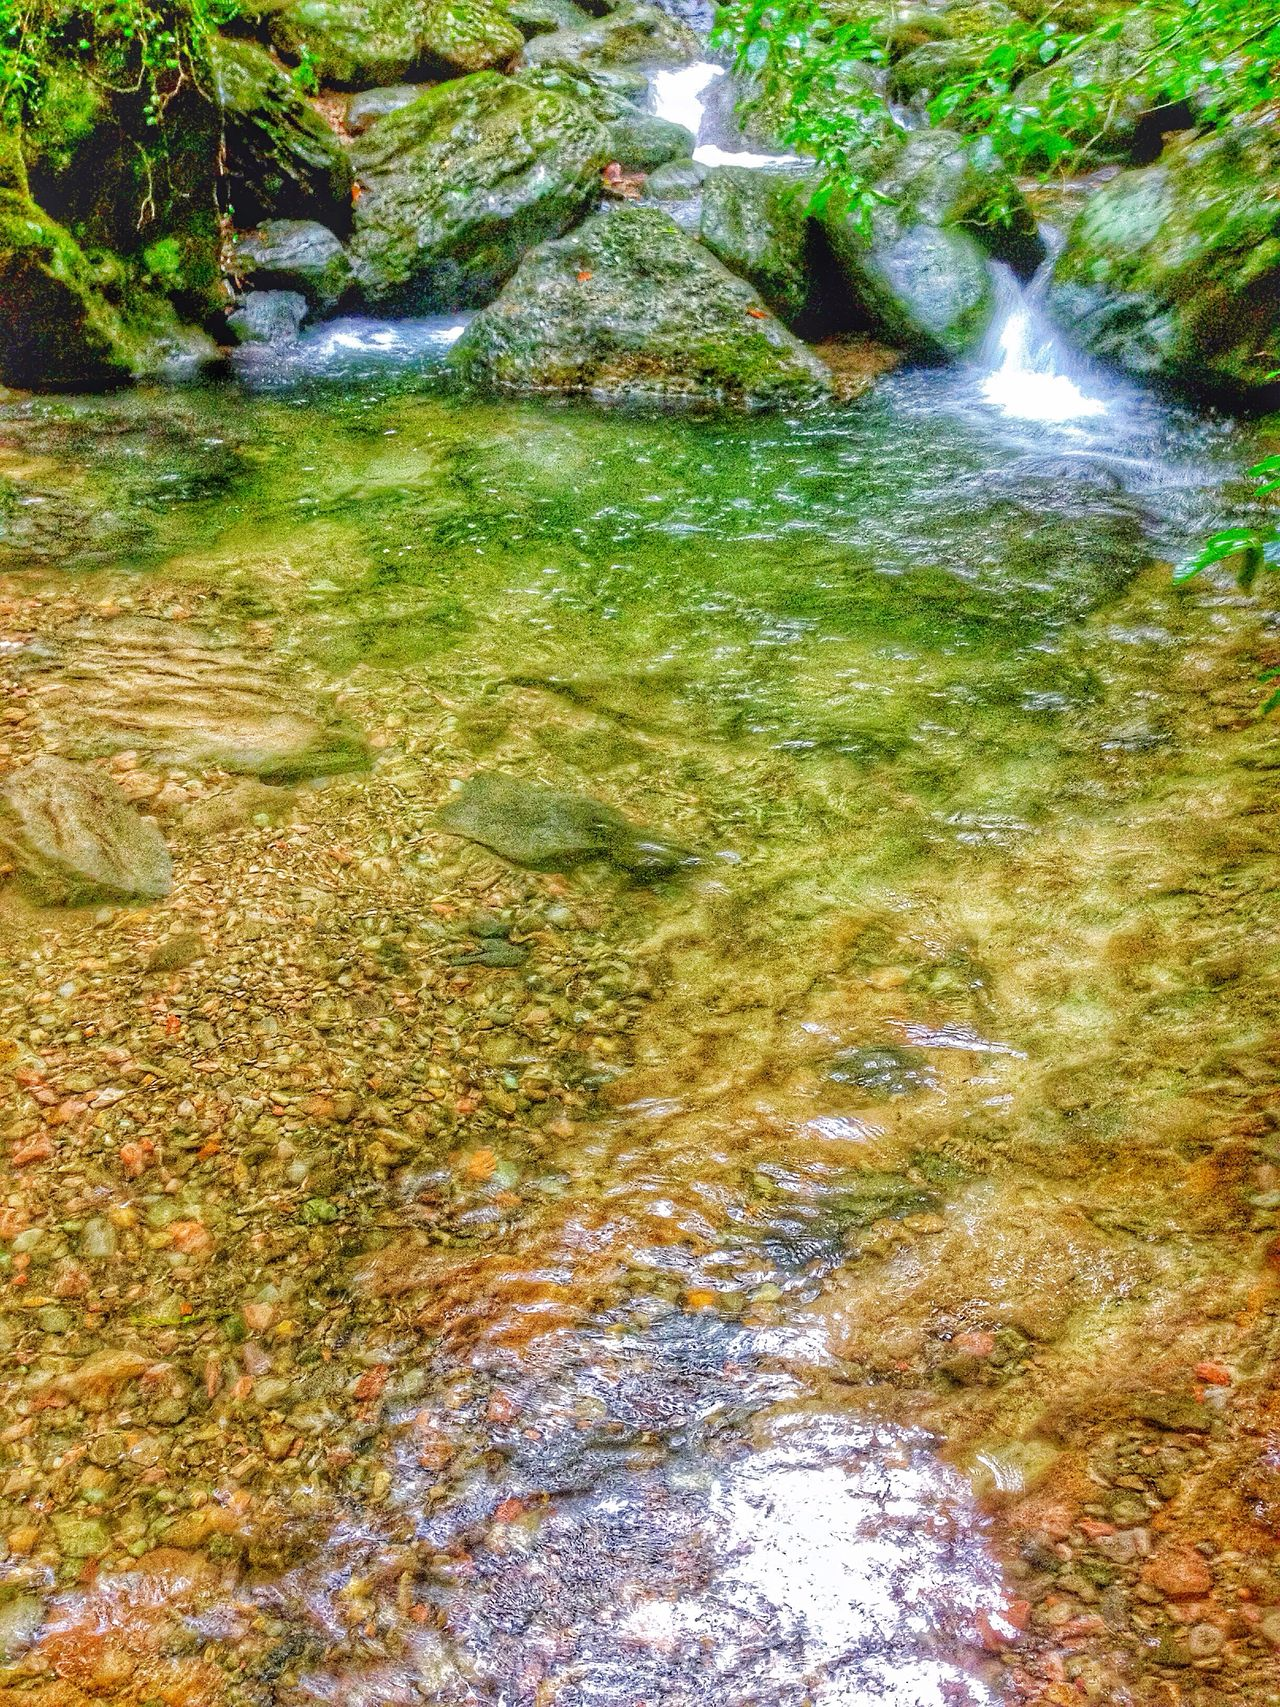 Have already taken many pictures of the waterfall, now I'm walking down to the parking lot, crystal clear, cool mountain water! The Great Outdoors - 2016 EyeEm Awards Check This Out Outdoor Photography Creekside Trail Relaxing Cheese! Near In Sasebo Japan Scenery ALL ABOARD!